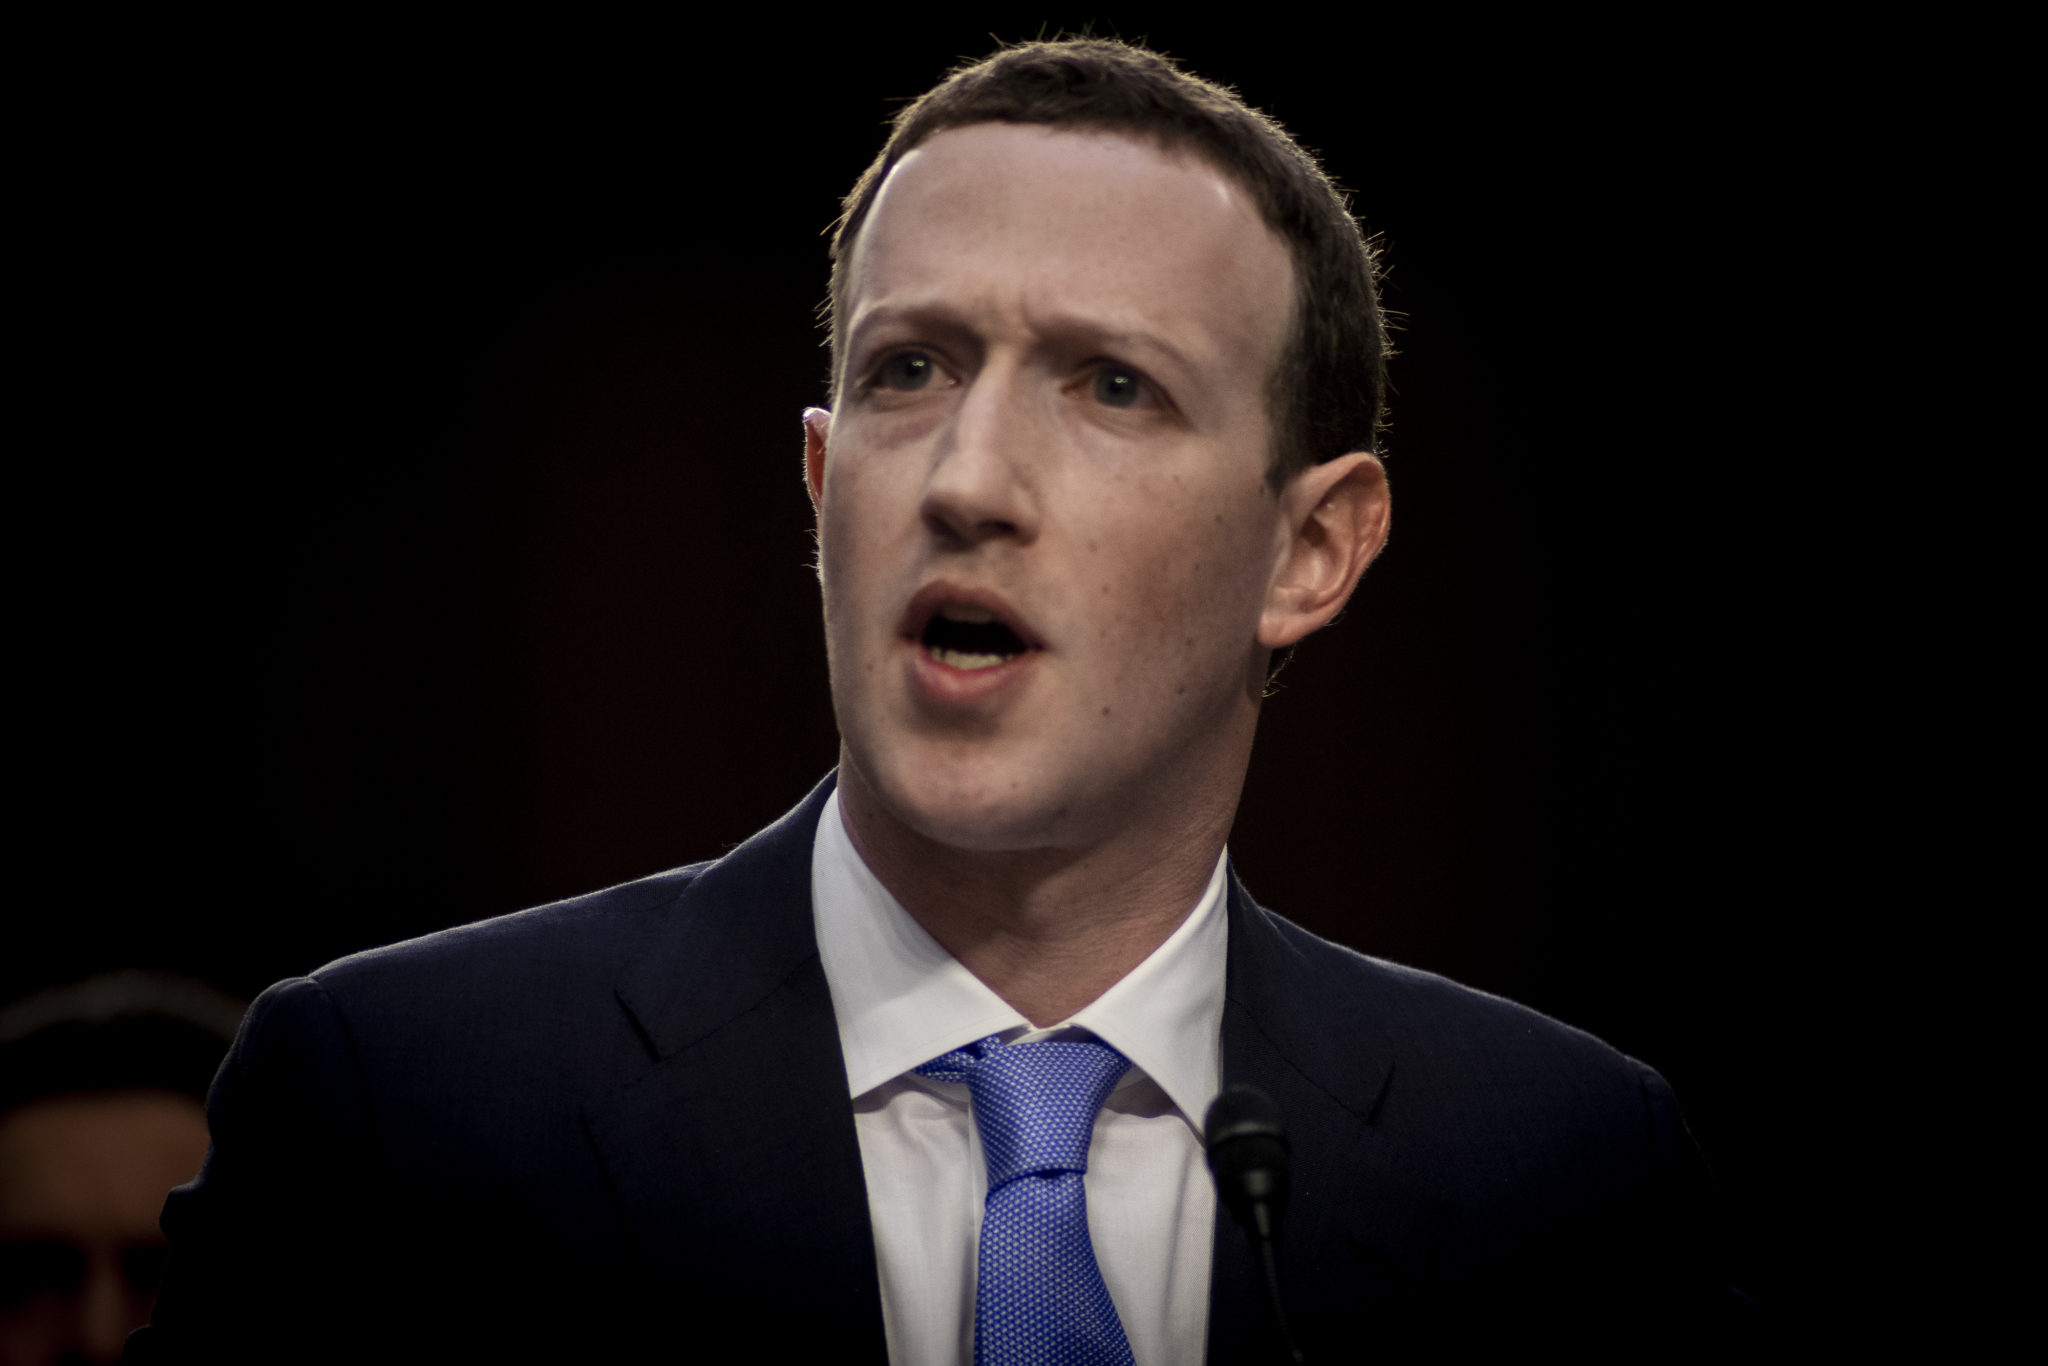 Mark Zuckerberg testifies before the Senate, April 10, 2018